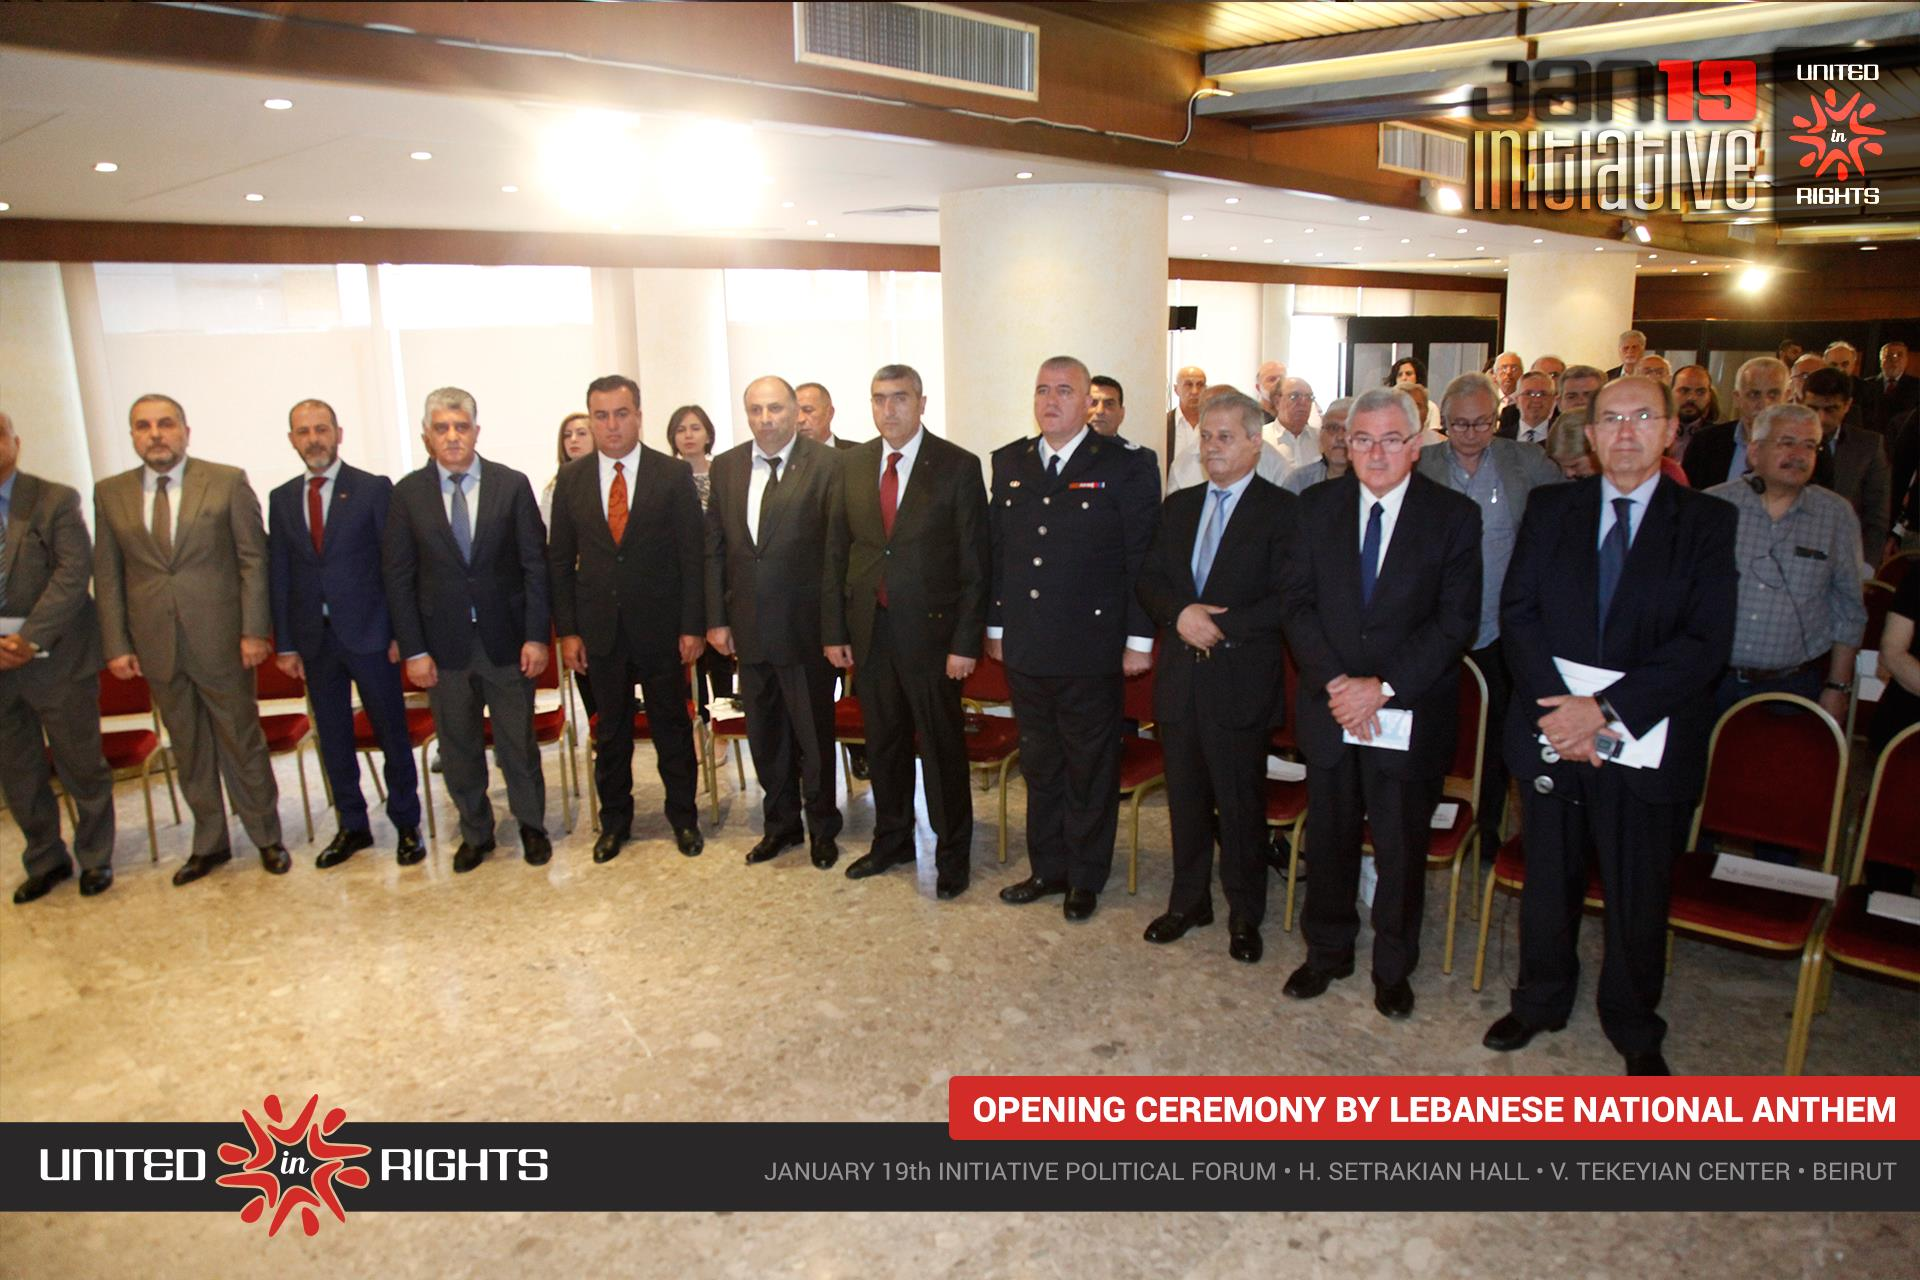 January 19th Initiative Political Forum's opening ceremony by the Lebanese National Anthem